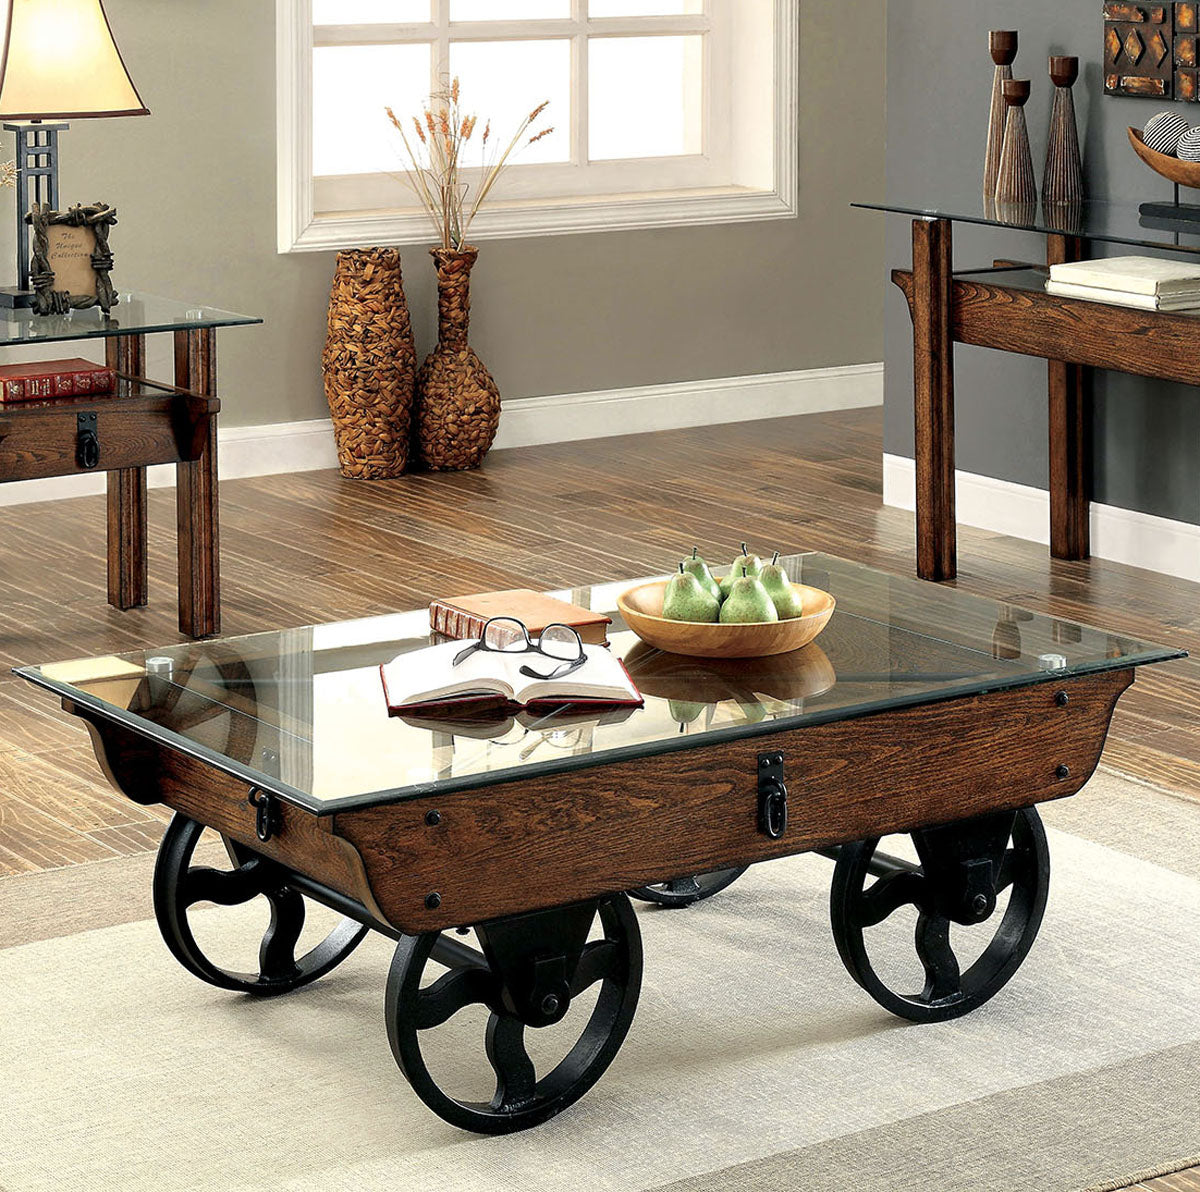 Penny CM4318C Industrial Medium Weathered Oak Wood Coffee Table